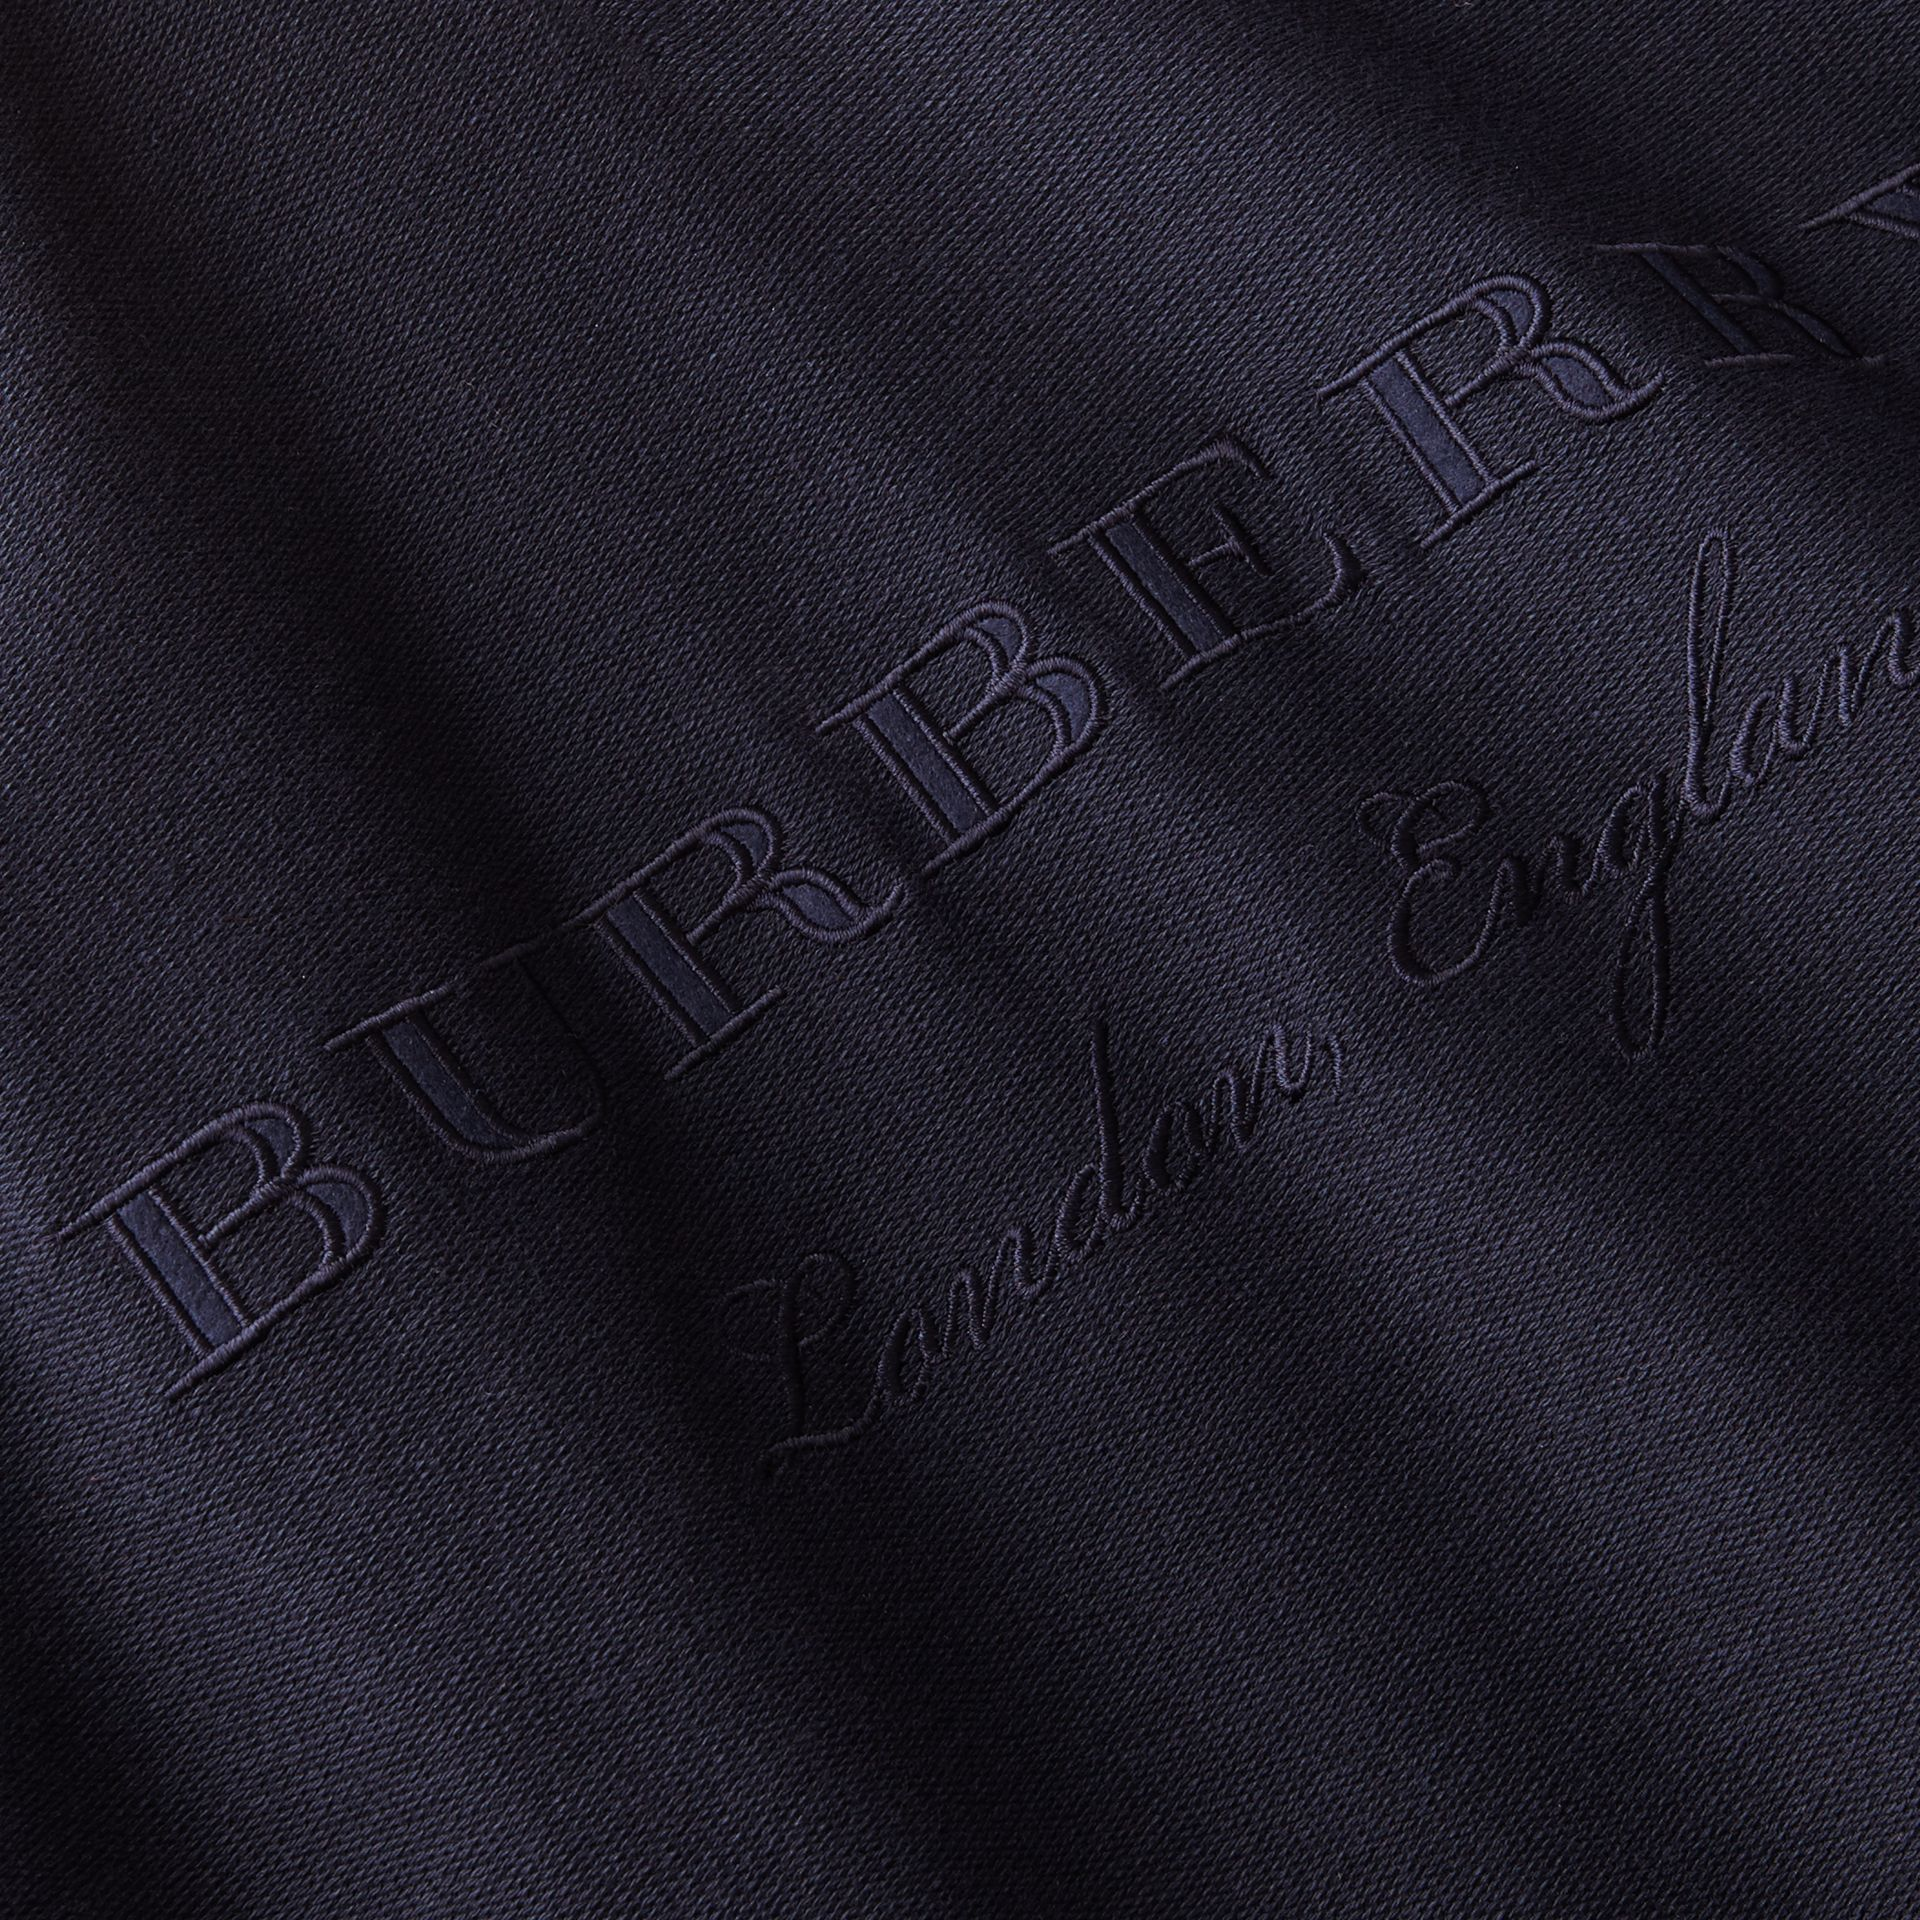 Embroidered Motif Cotton-blend Jersey Sweatshirt in Navy - Men | Burberry - gallery image 2